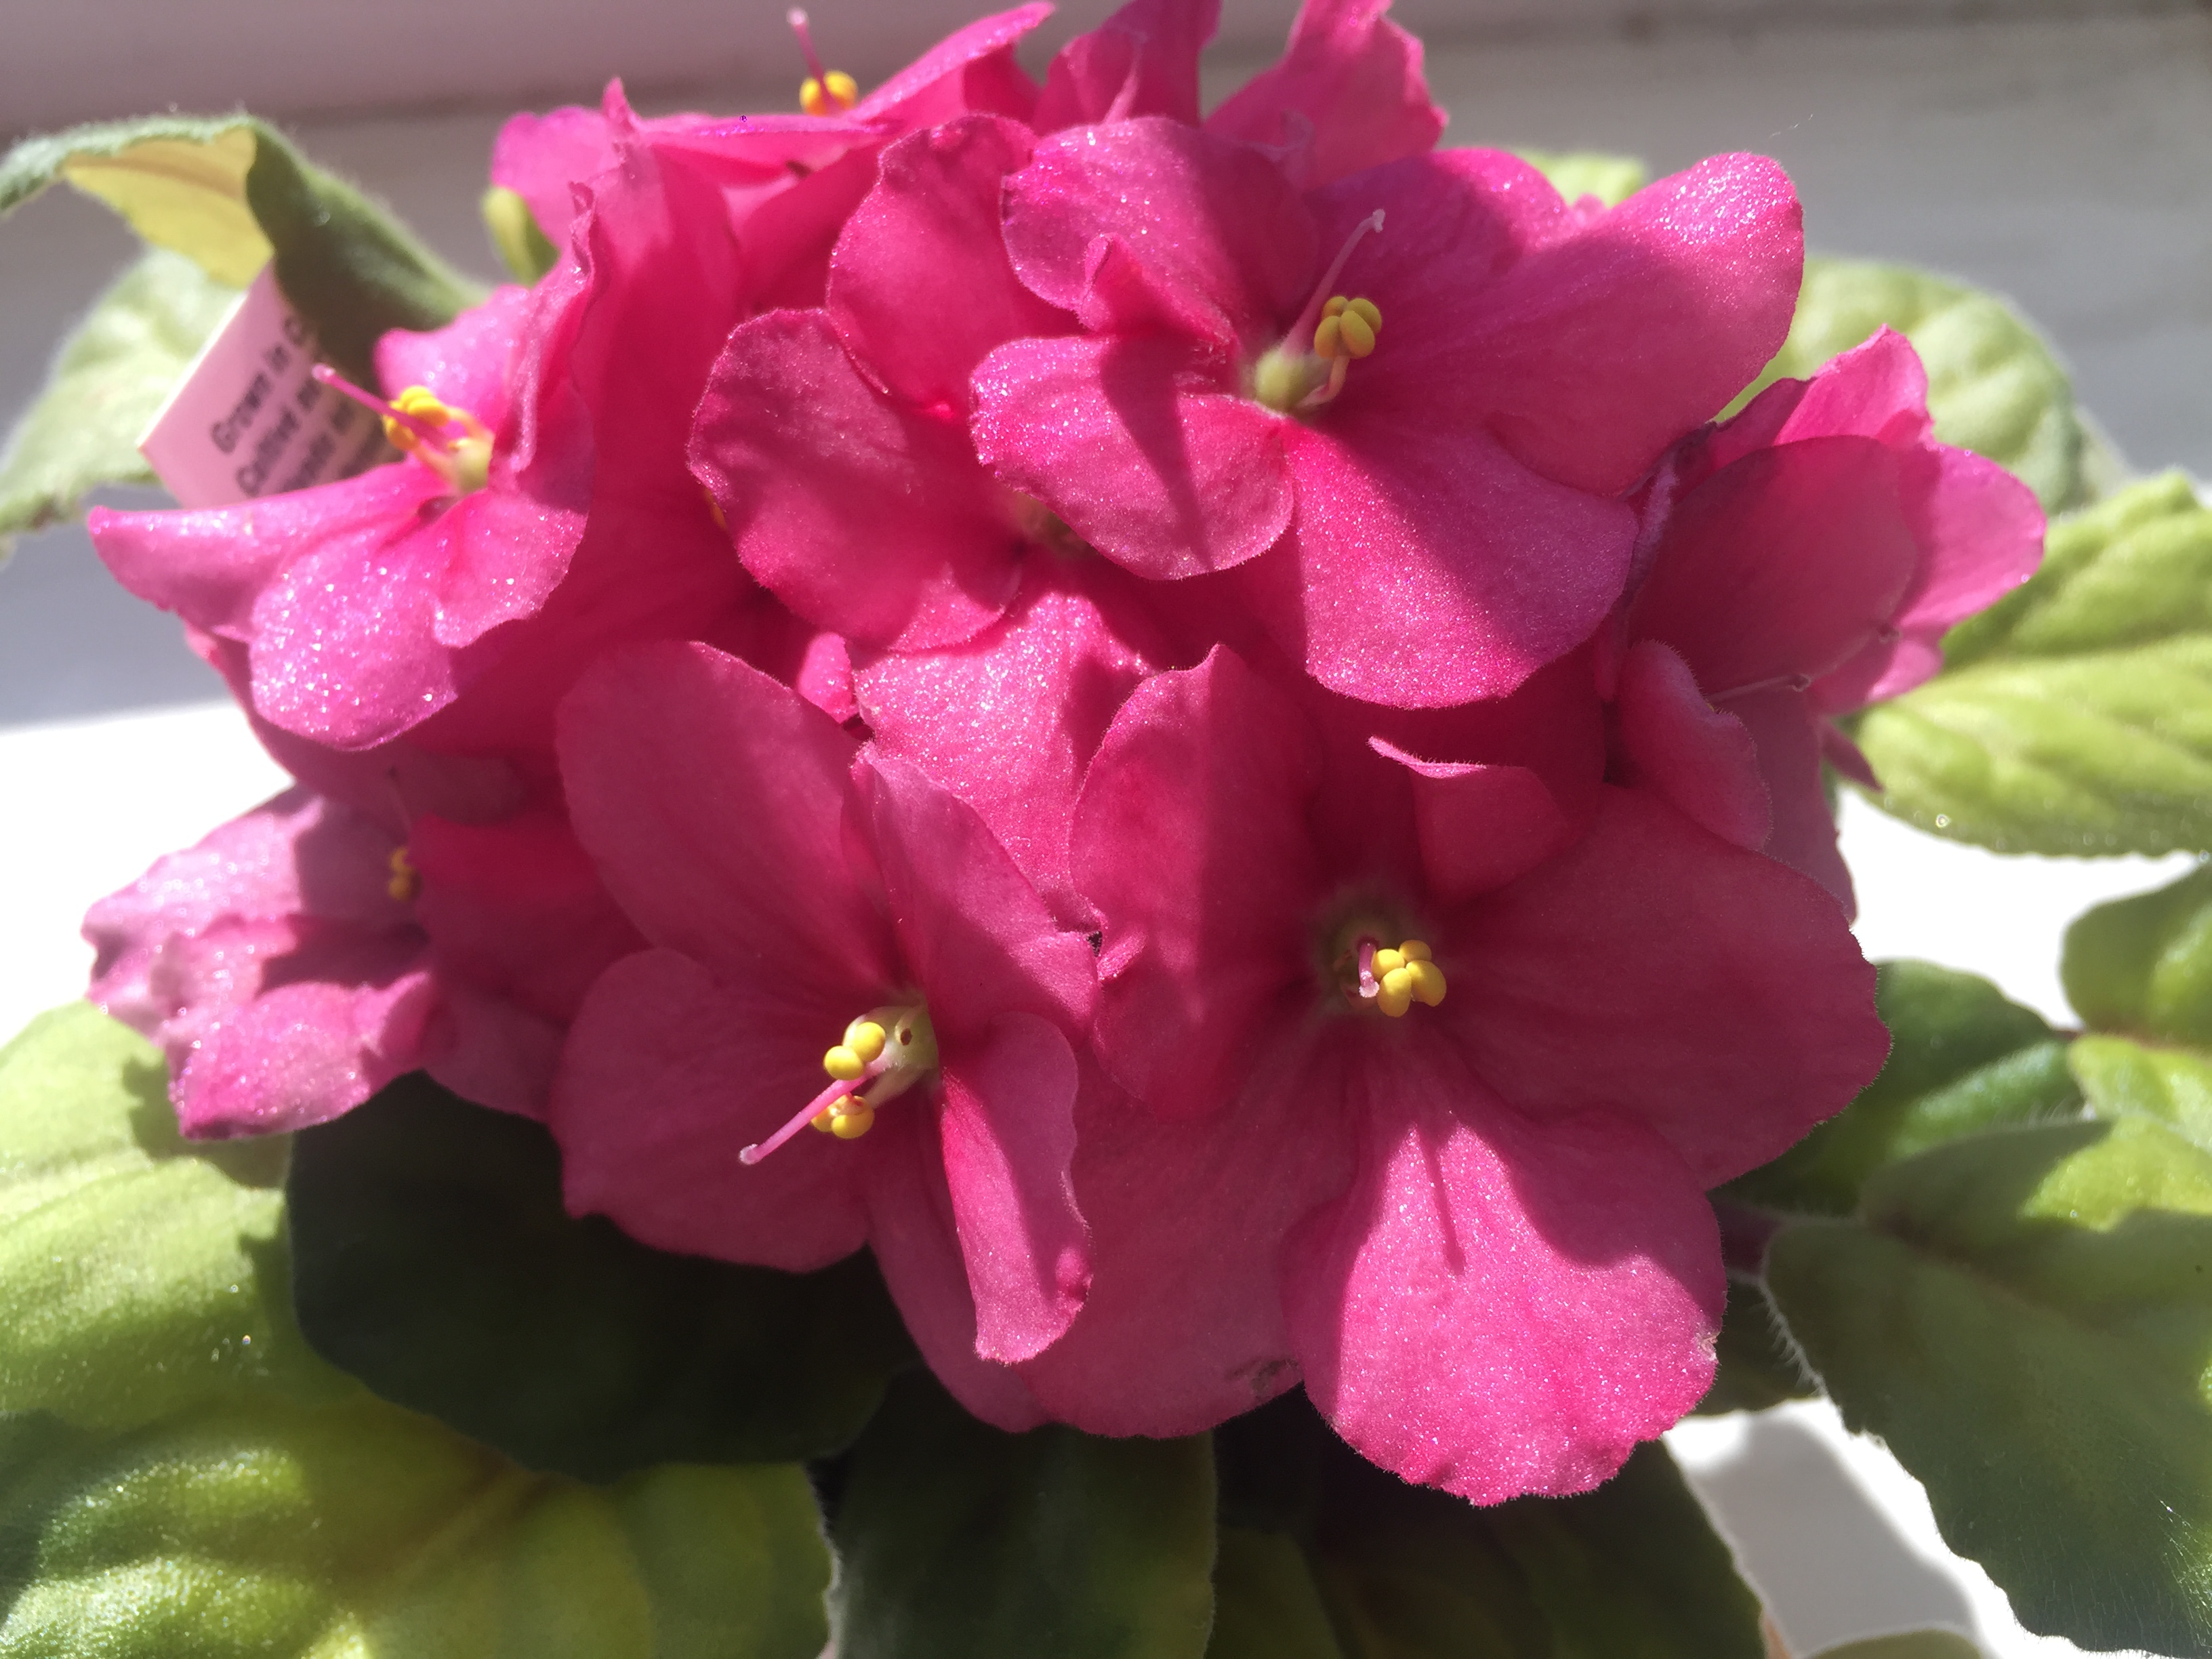 he colorful blooms of African violets are extra special. They'll instantly add color to any room.